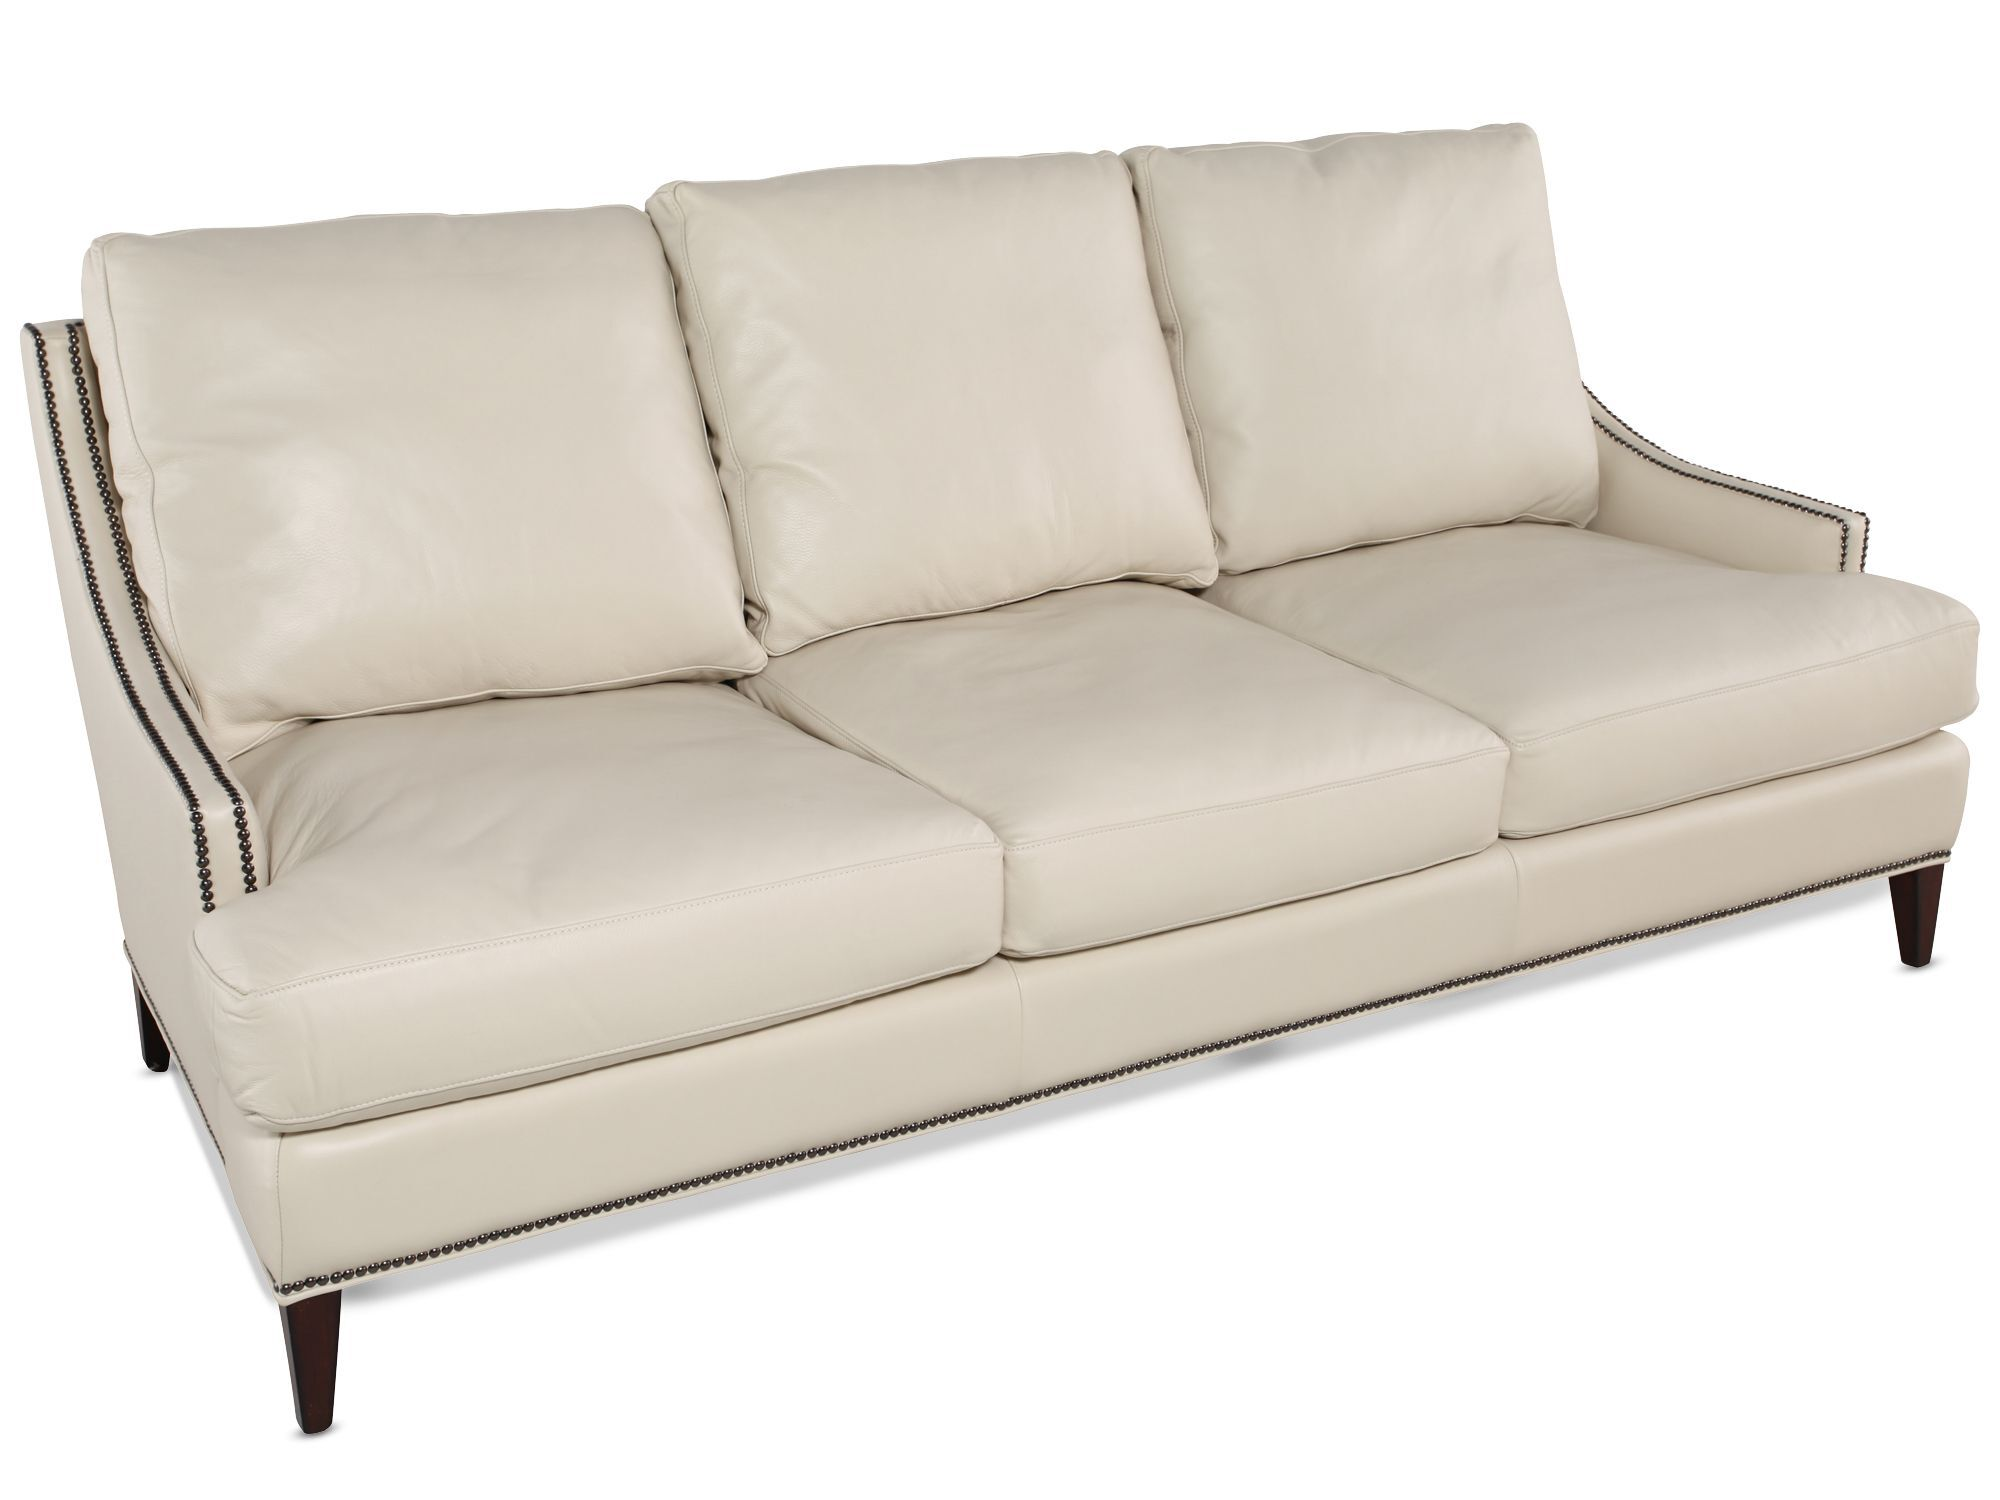 henredon sofa leather sleeper indianapolis mathis brothers furniture